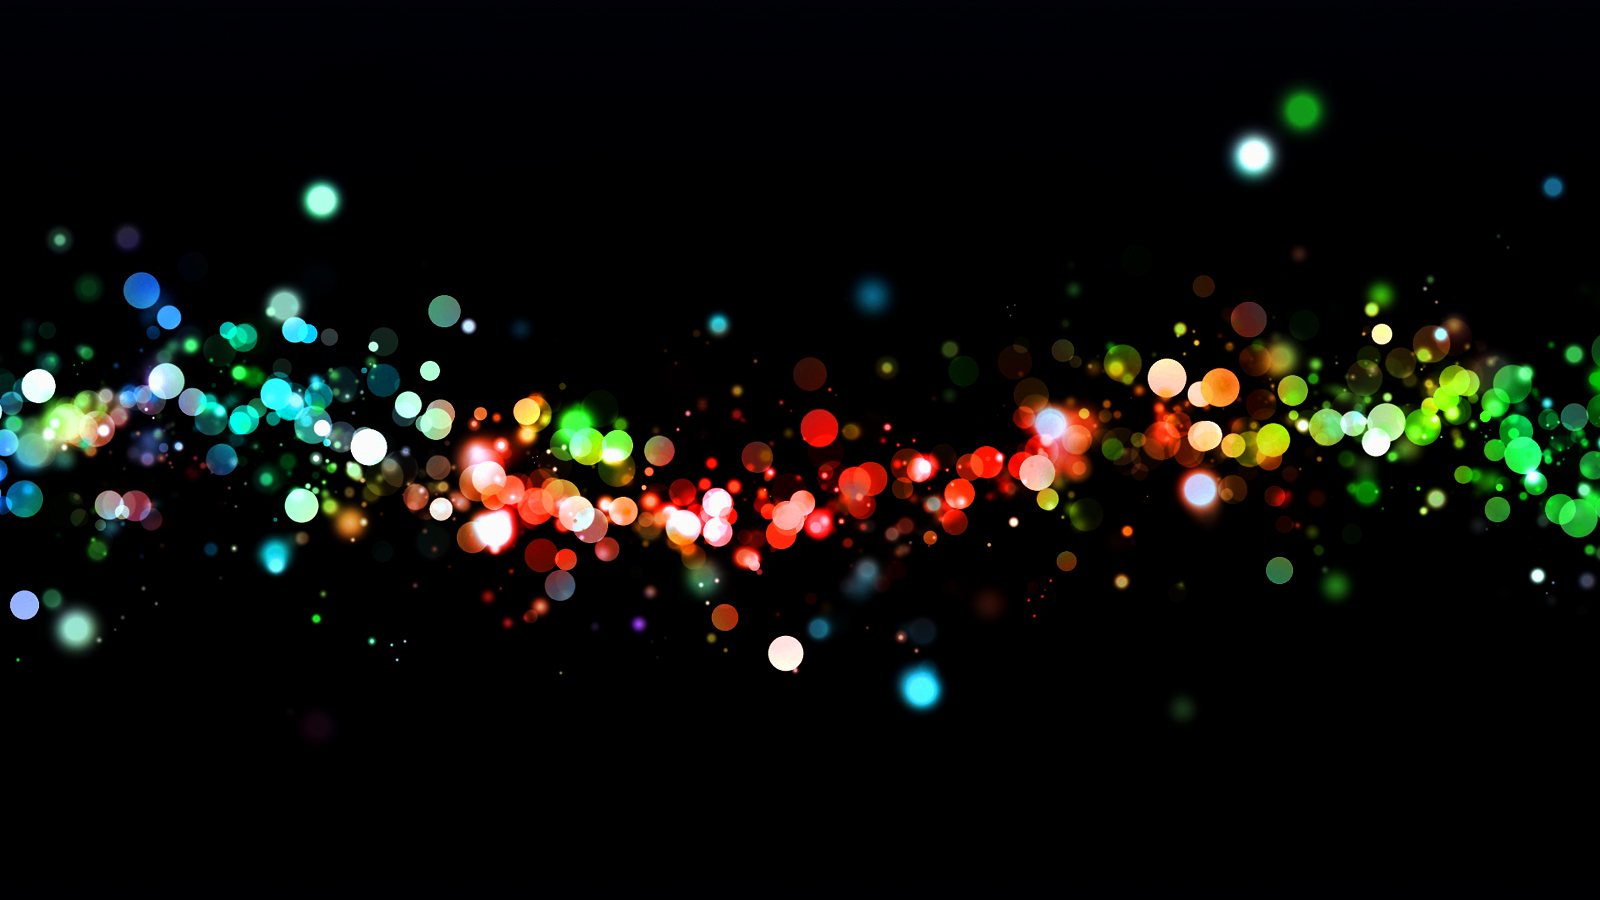 all hd wallpaper bokeh - photo #28